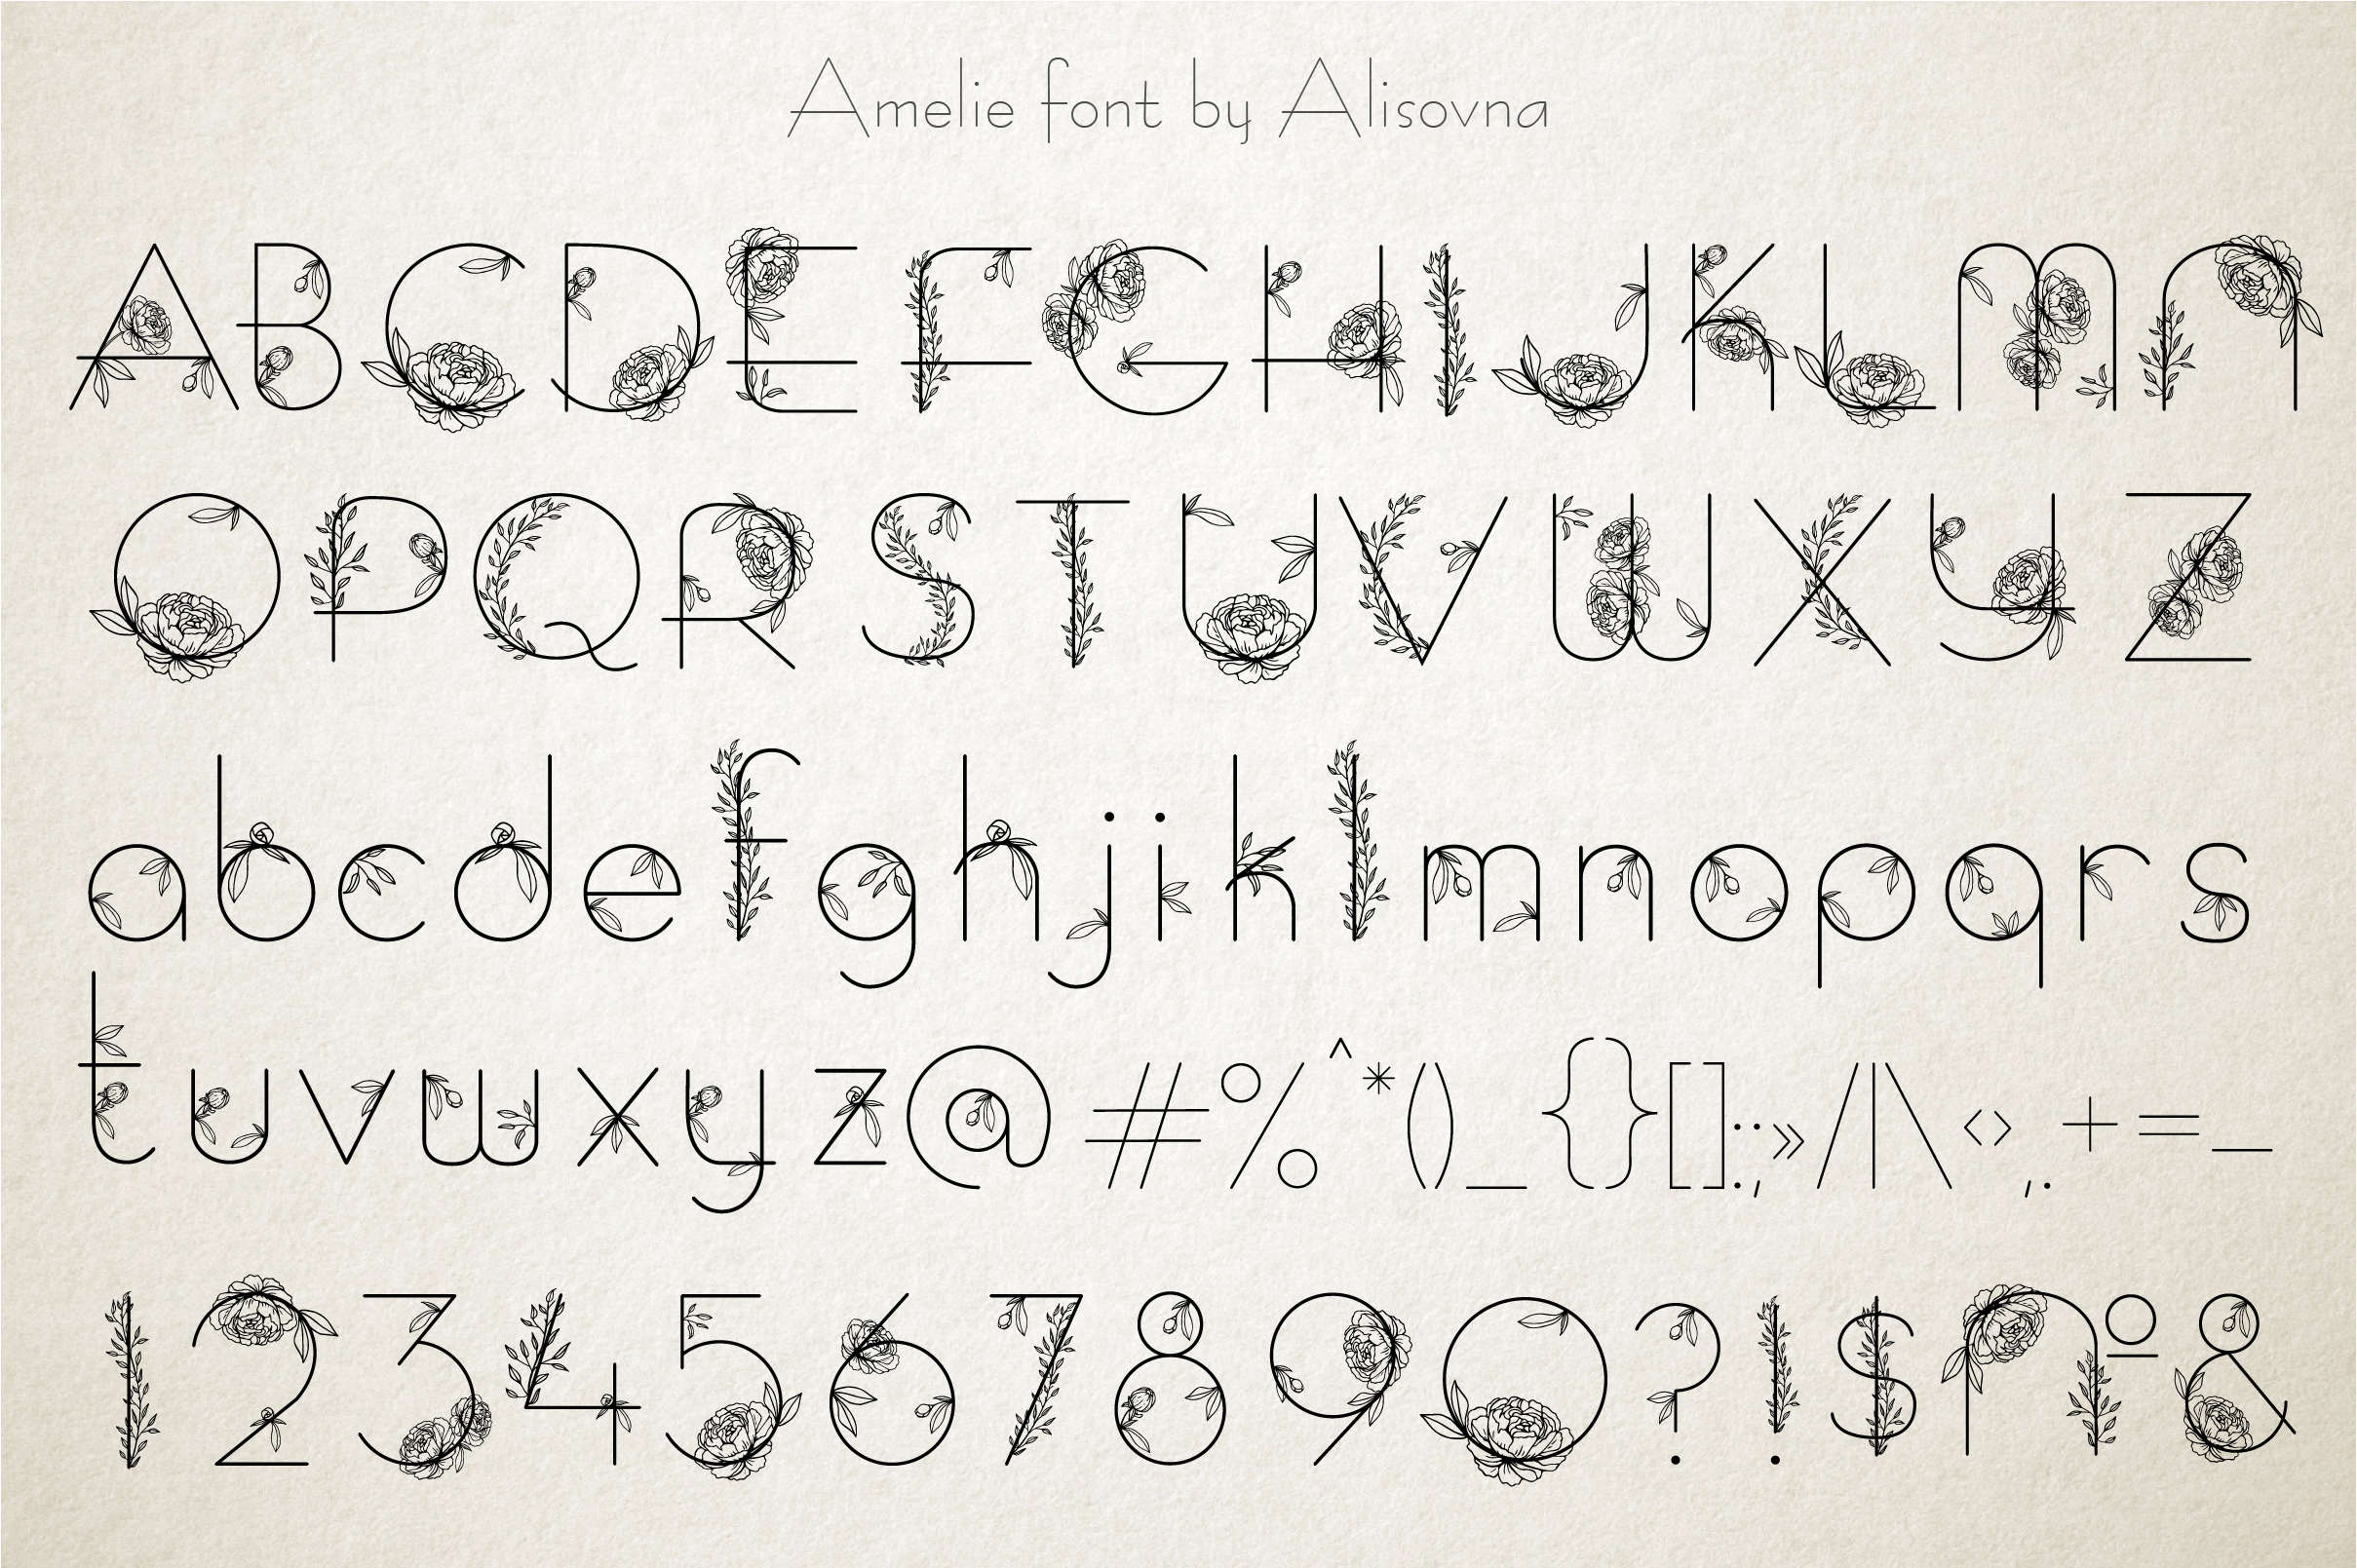 Amelie Floral Display Font example image 4